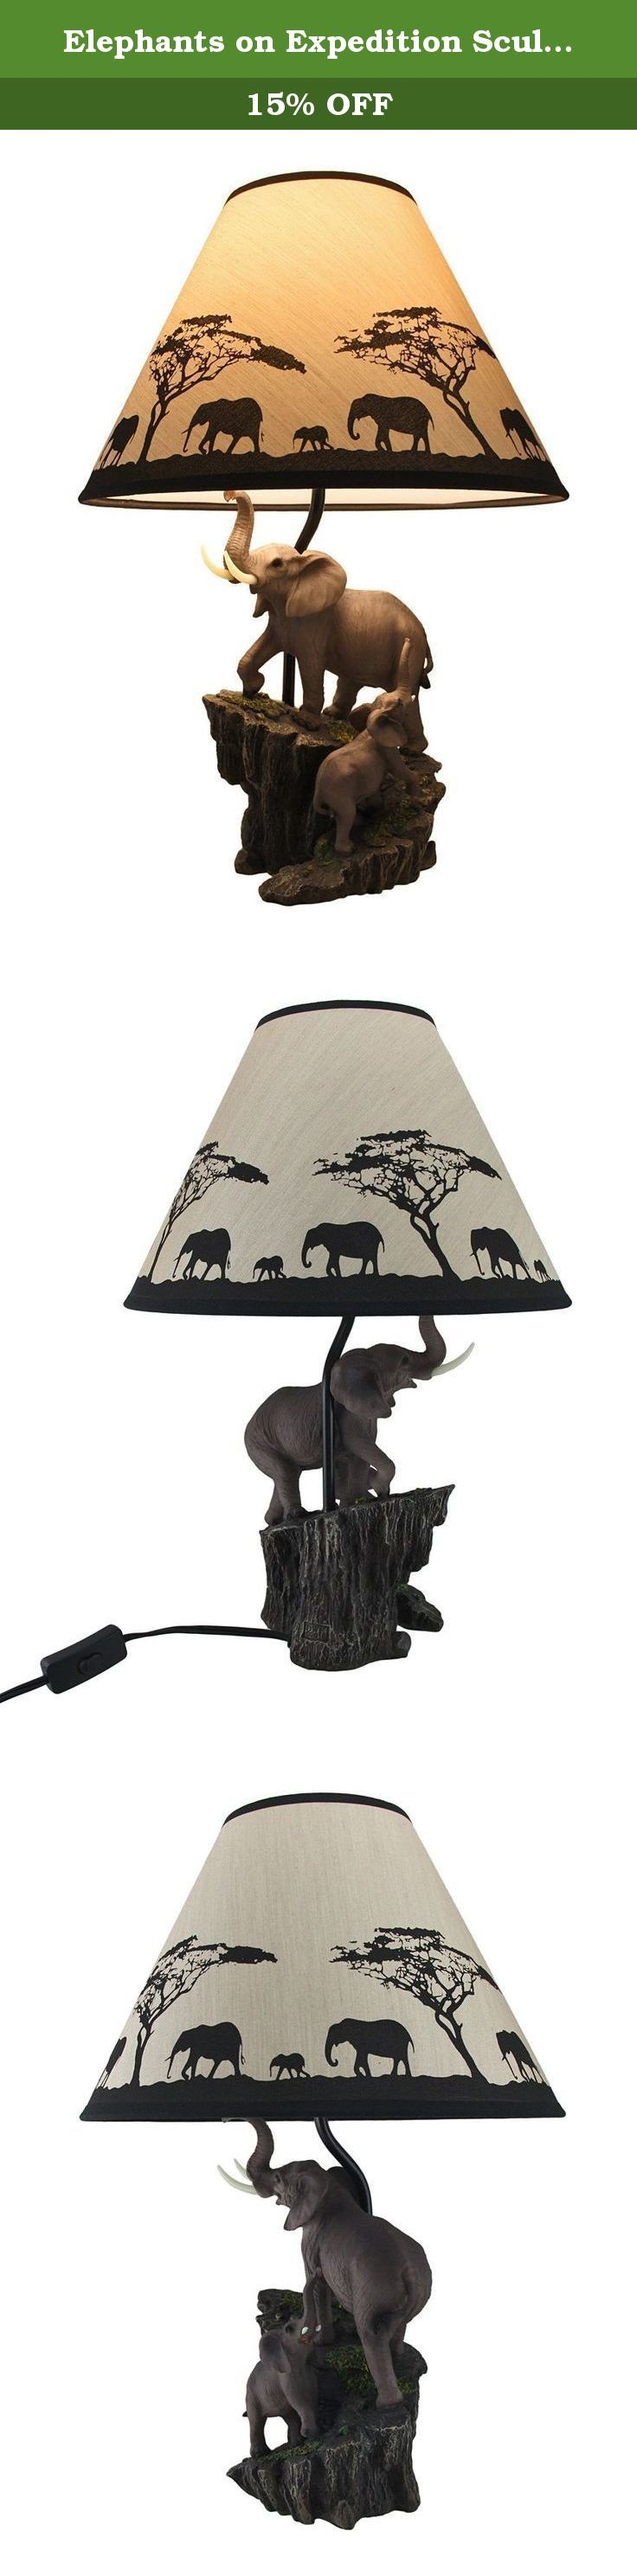 Elephants on Expedition Sculptural Table Lamp w/Decorative Shade. Featuring two elephants climbing a rocky mountainside, this sculptural table lamp is a wonderful accent in nature and outdoorsy themed rooms. This 18.5 inch tall, 7.5 inch long, 6 inch wide (47 X 19 X 15 cm) elephant lamp is expertly cast in resin with a highly detailed hand painted finish, and includes a 9 inch high, 13 inch diameter (23 X 33 cm) elephants on expedition printed fabric shade. This lamp uses 1 Type A, 40…